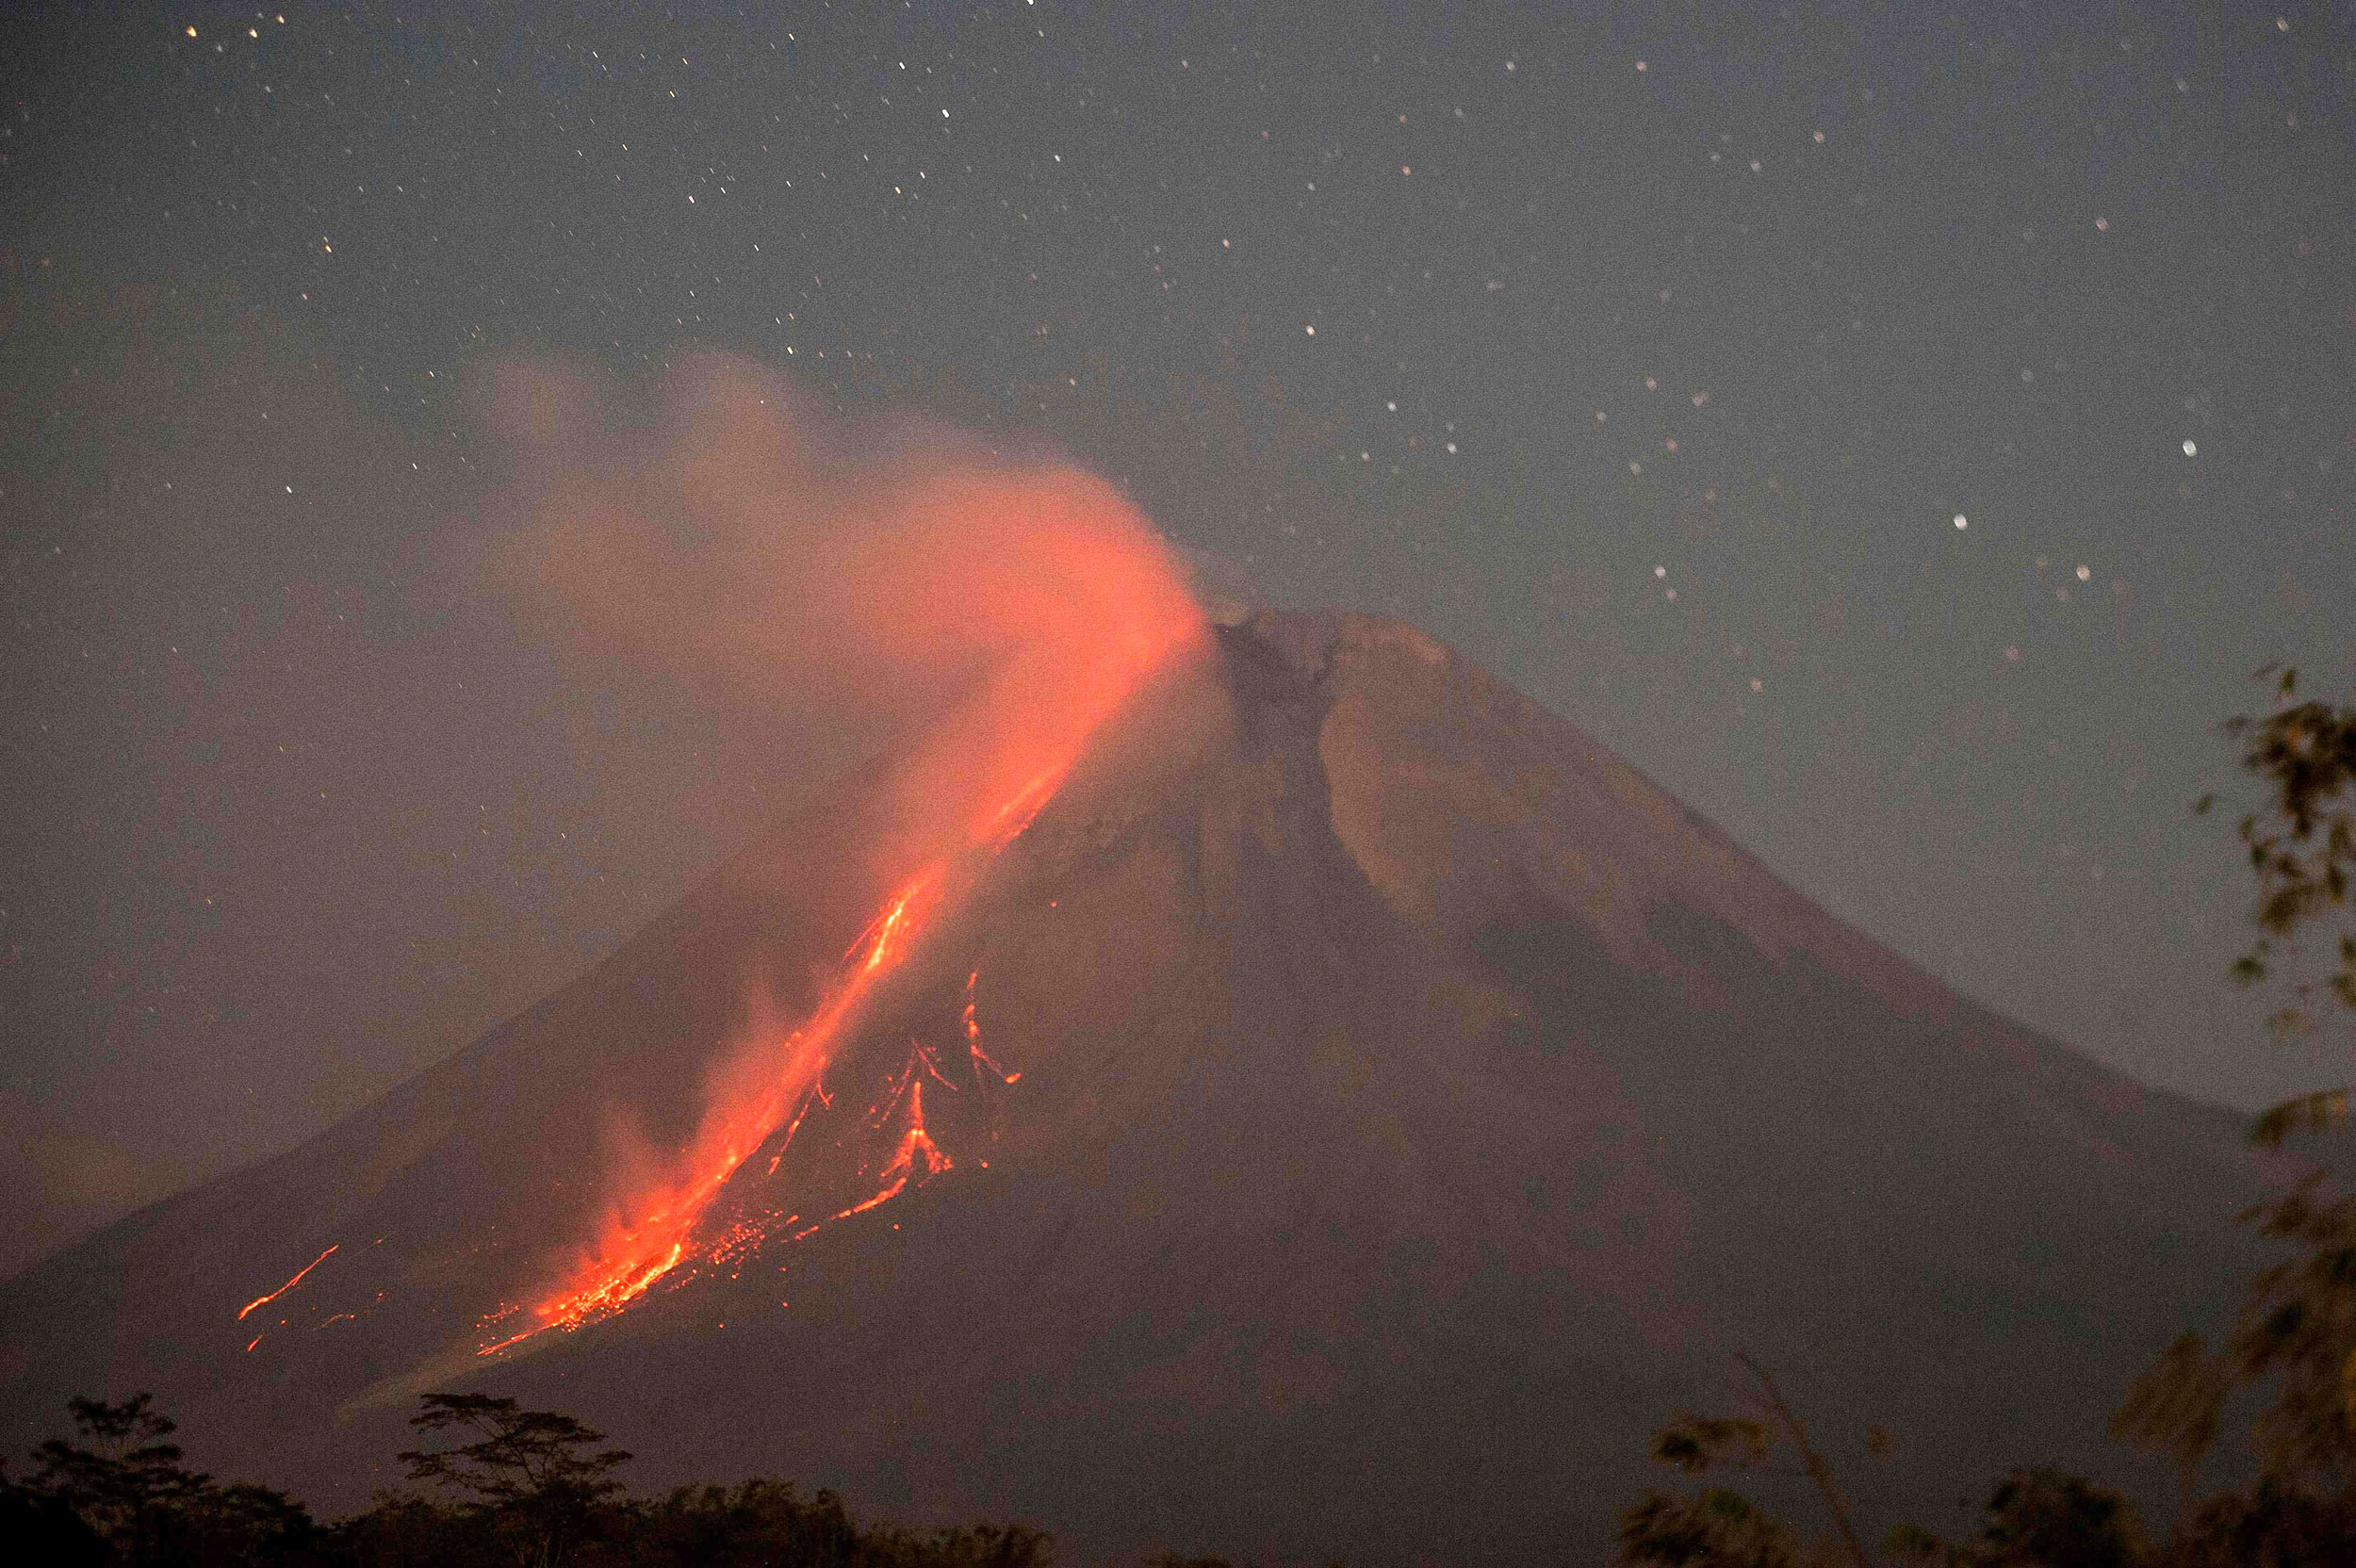 Lava streams from Indonesia's Mount Merapi in new eruption